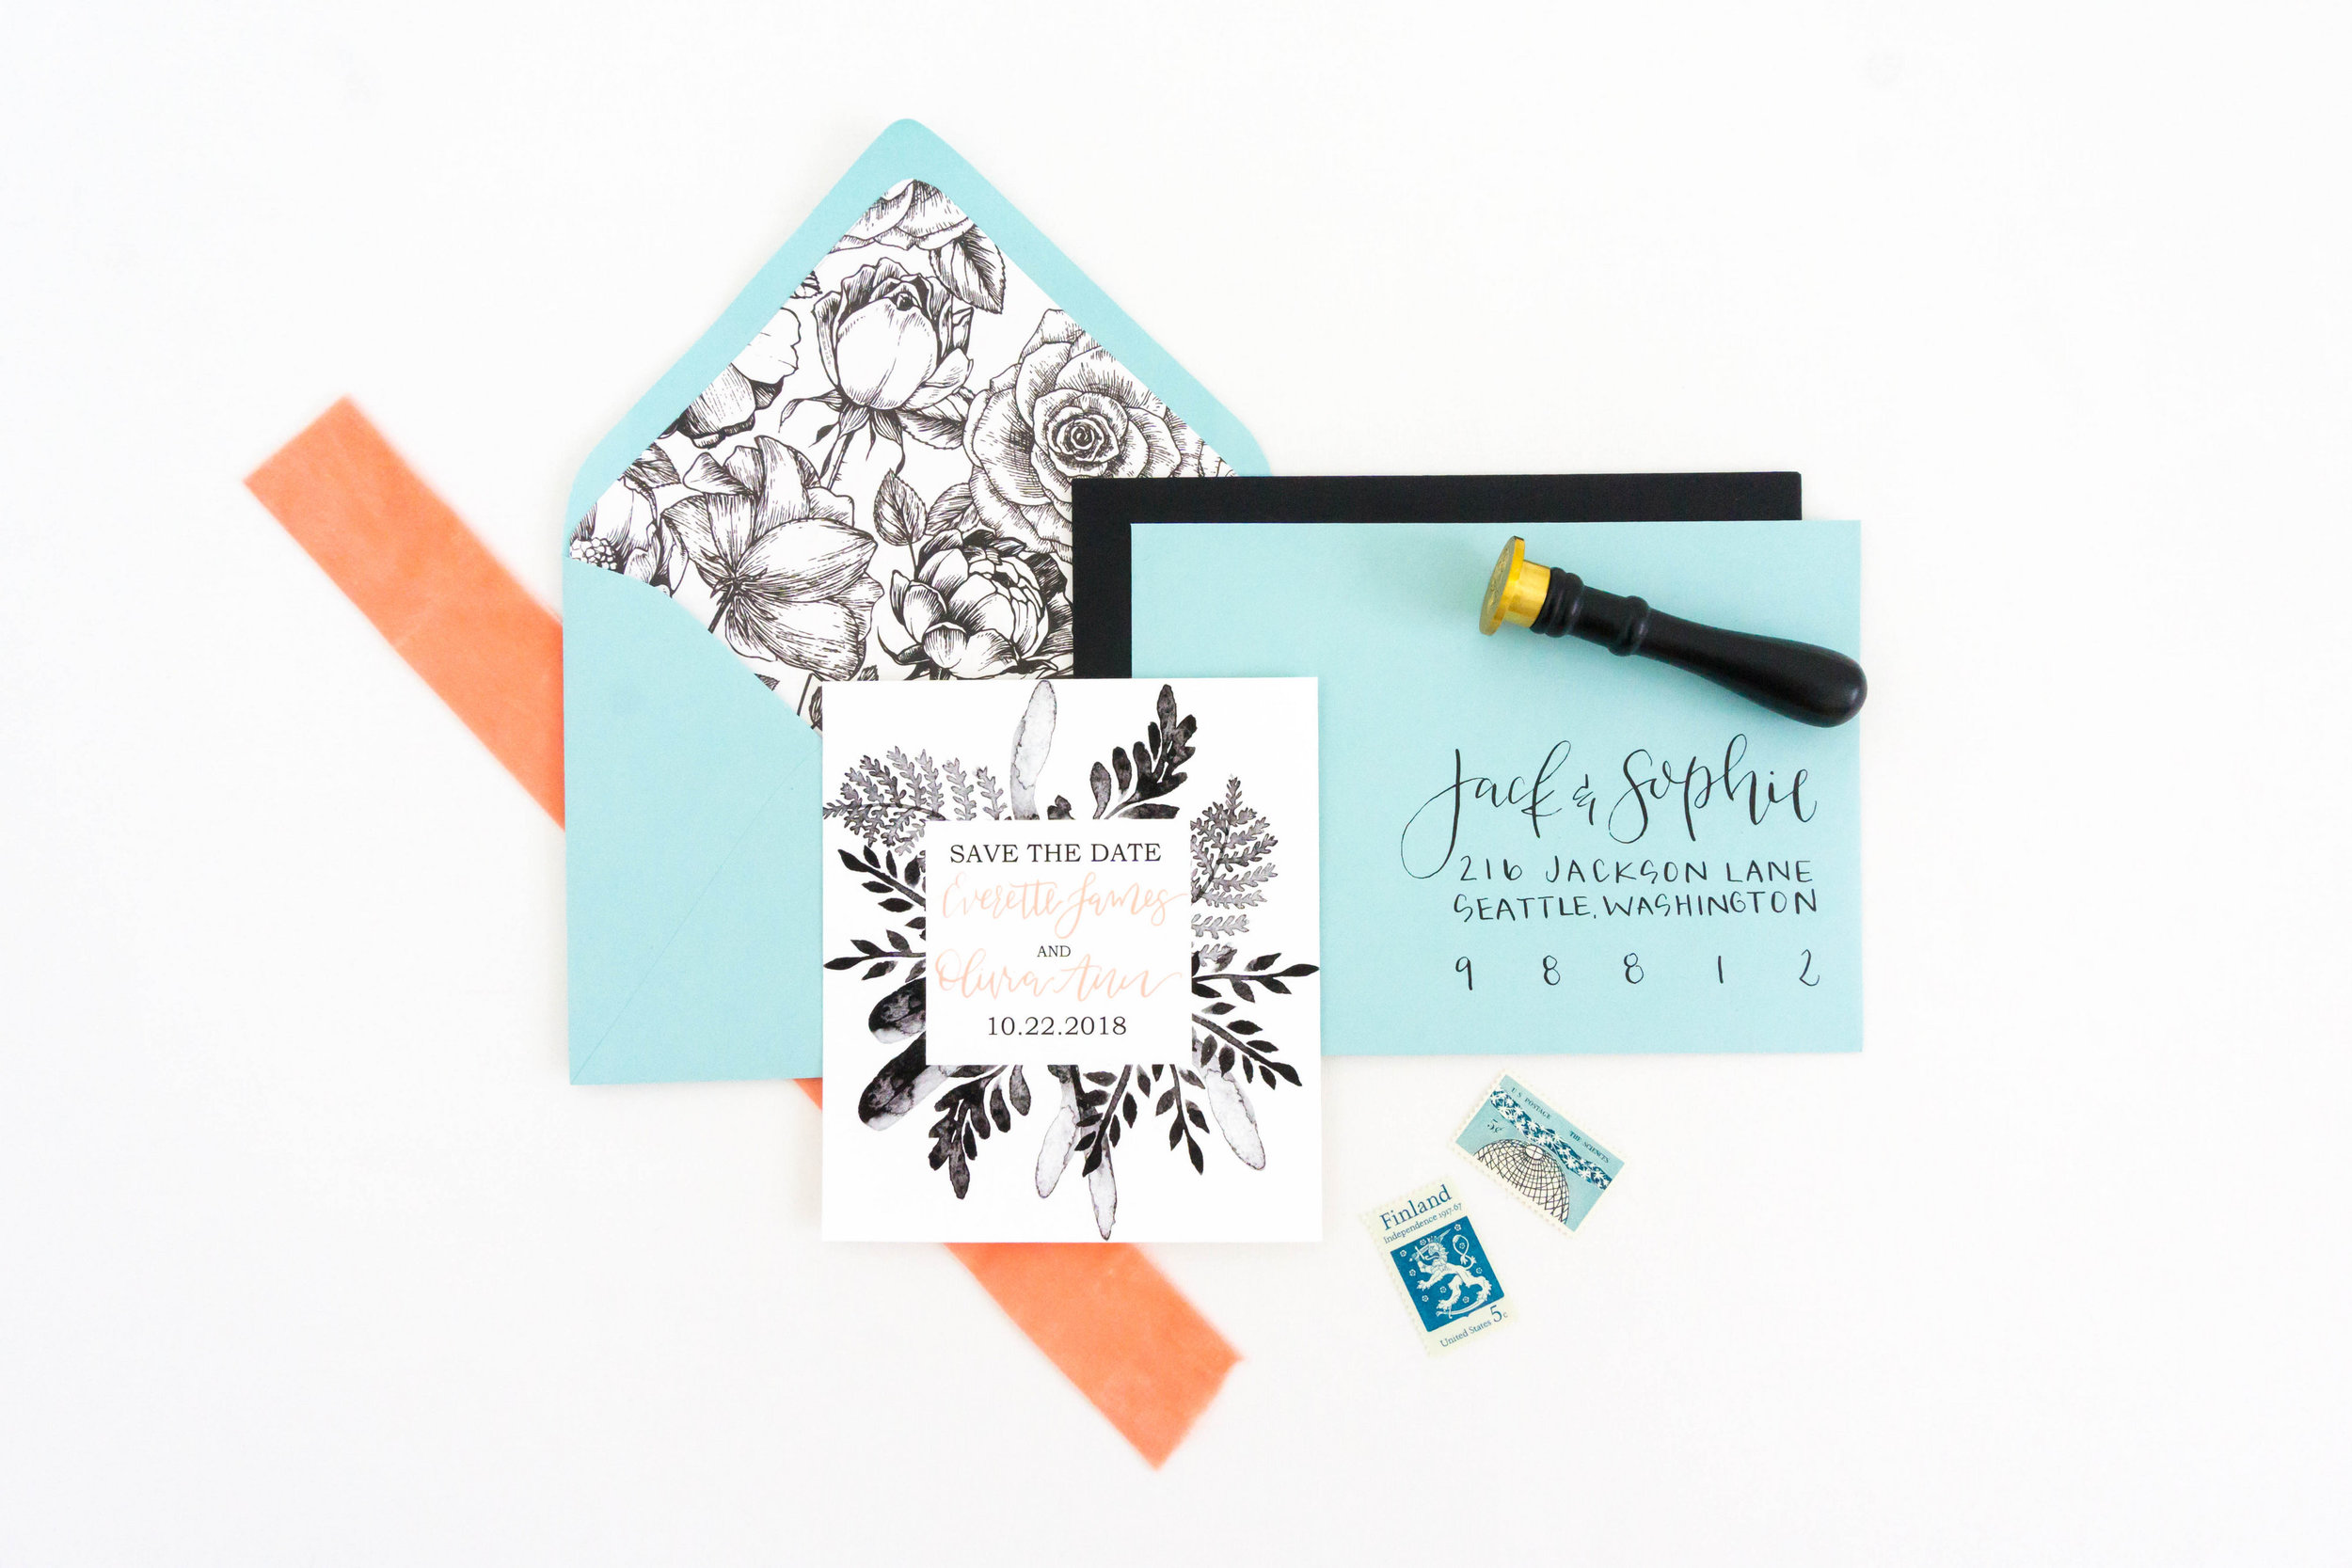 love-fern-design-studio-custom-wedding-invitations-for-the-modern-couple-modern-calligraphy-in-seattle-washington-custom-wedding-stationery-black-watercolor-save-the-date-teal-envelopes-floral-liner